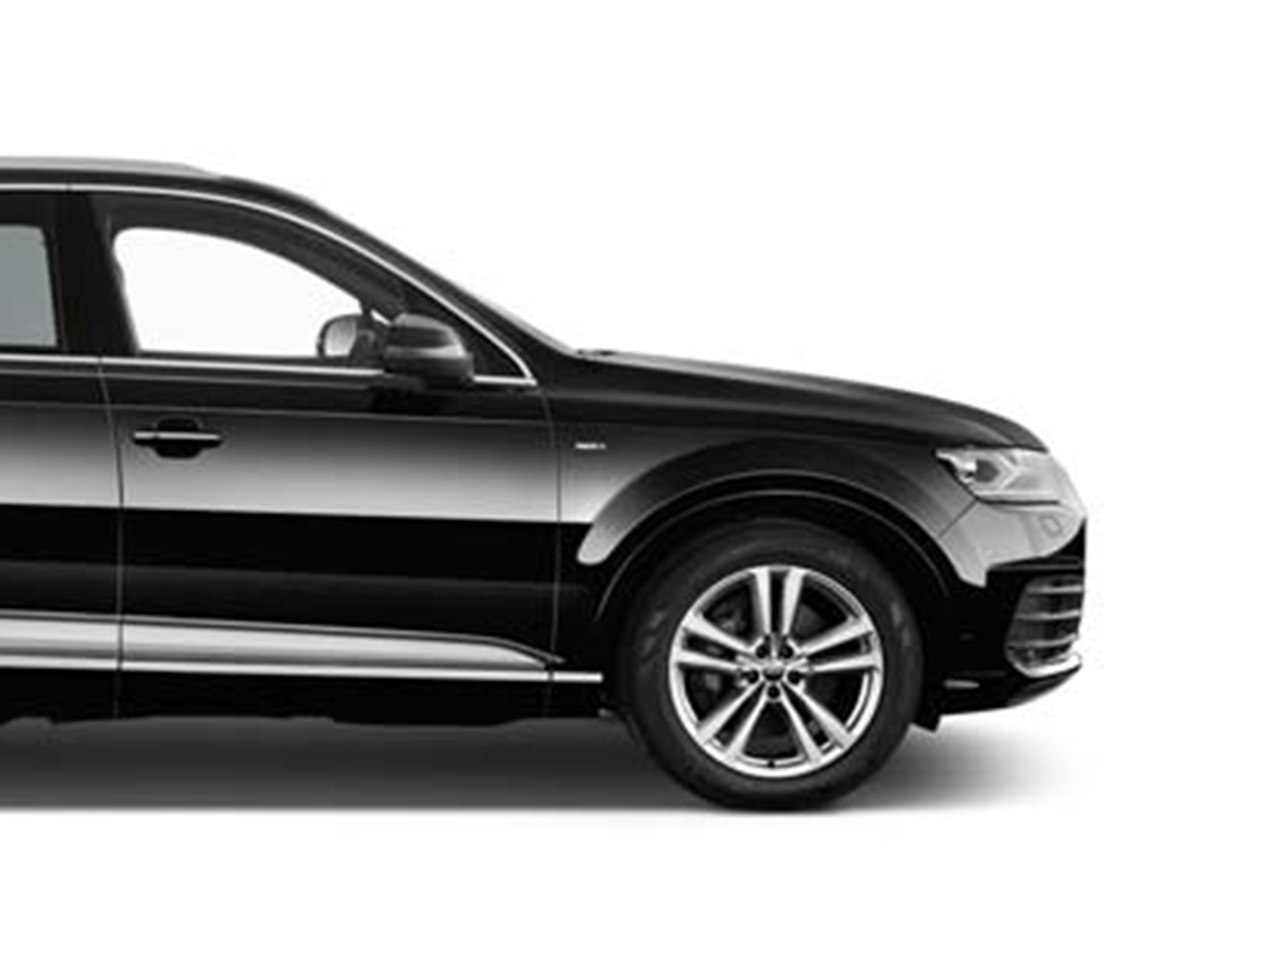 Audi Q7 car for hire